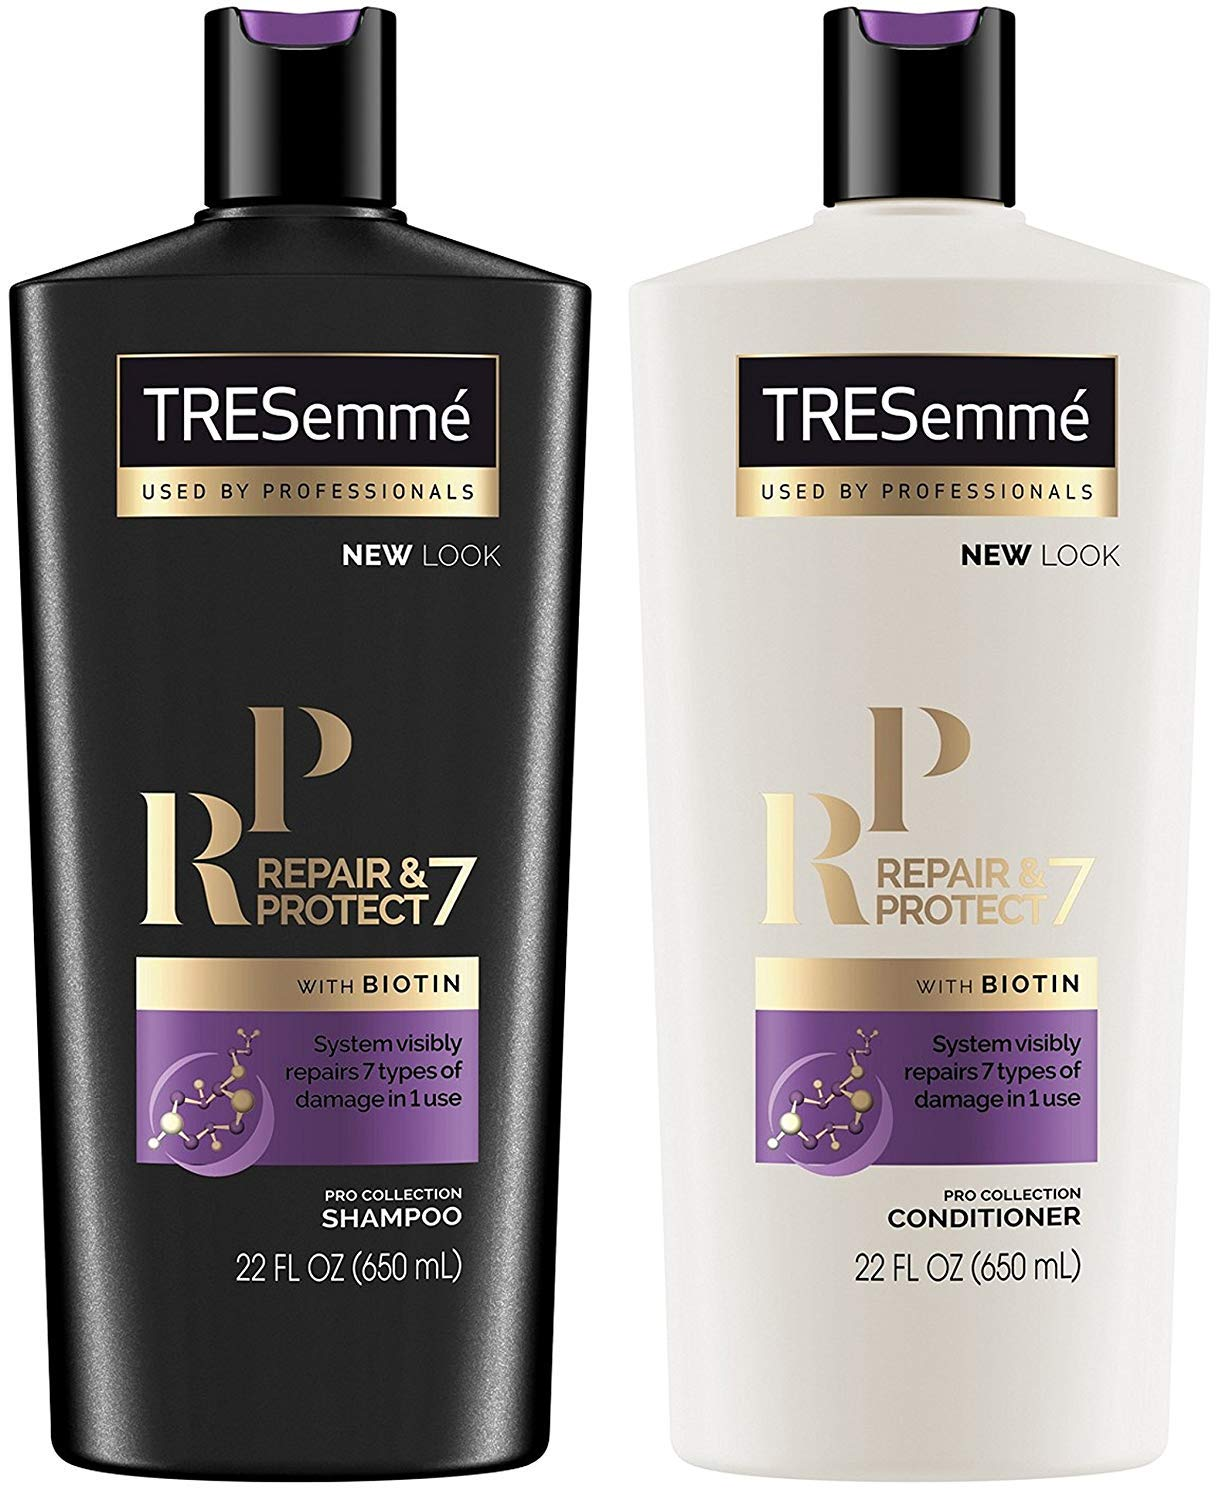 Tresemme Shampoo & Conditioner Repair & Protect 7 With Biotin - 22 Ounce each